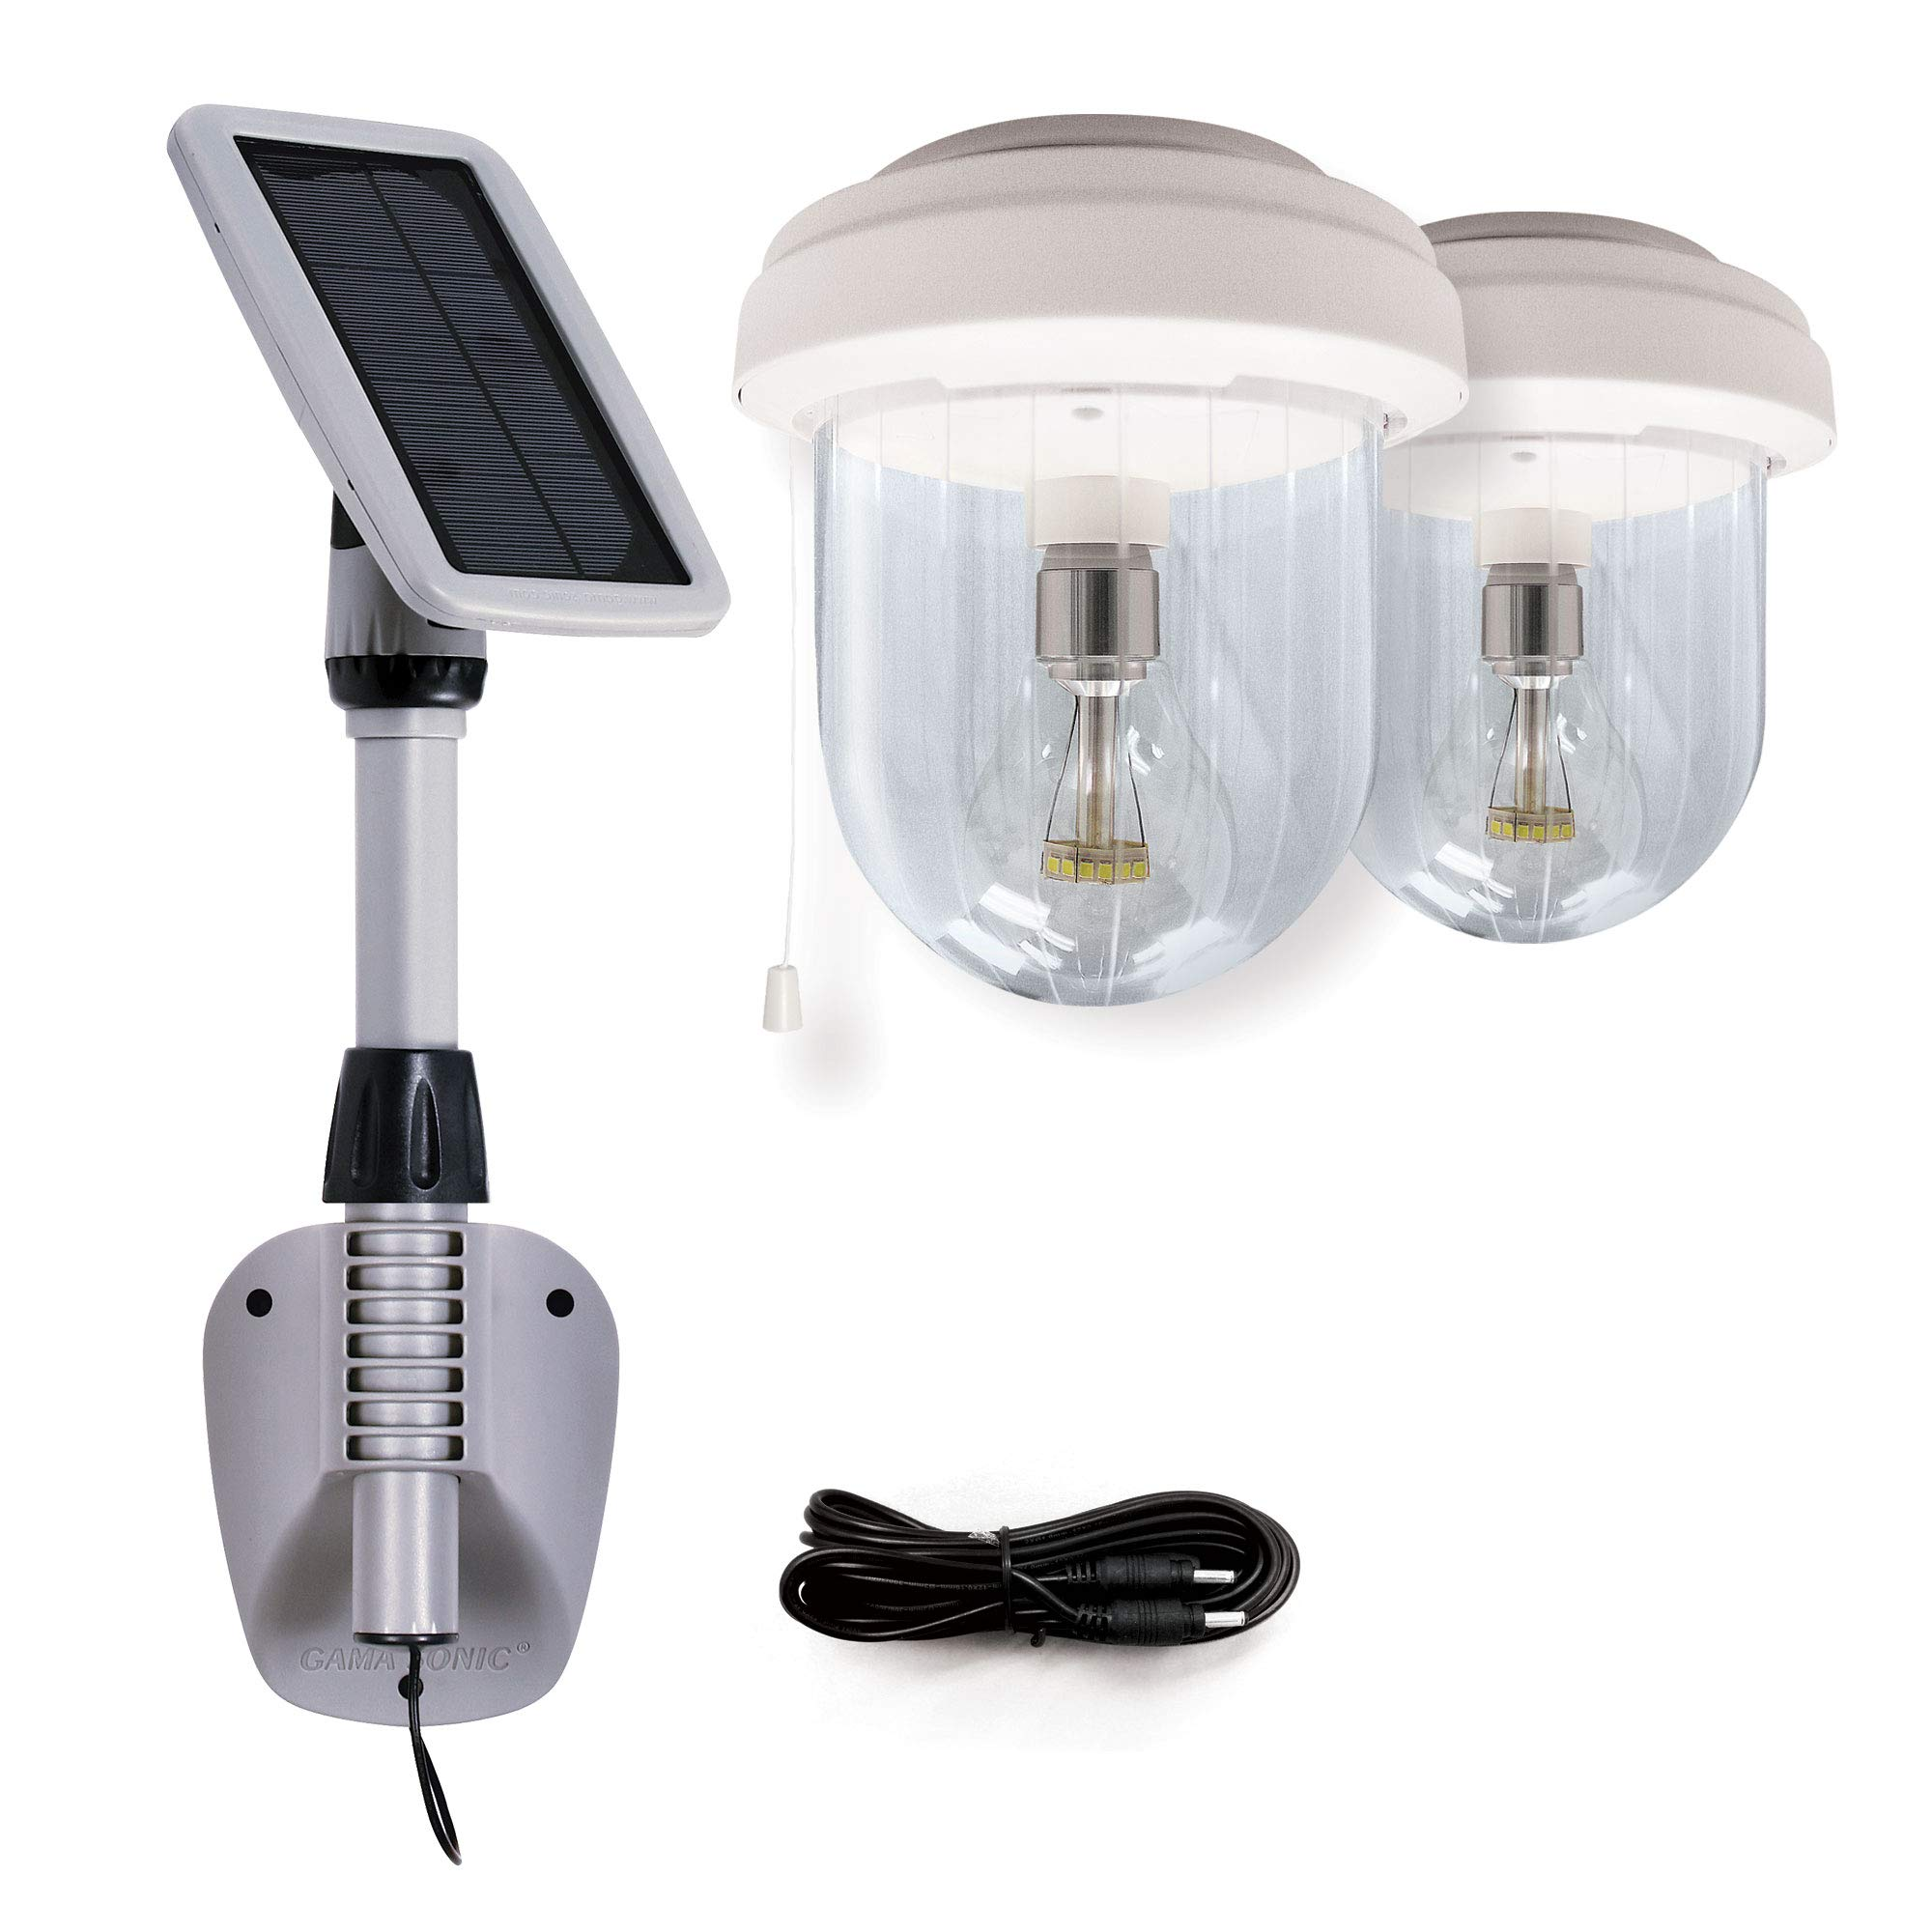 GAMA SONIC Light My Shed IV, 2 Solar Powered